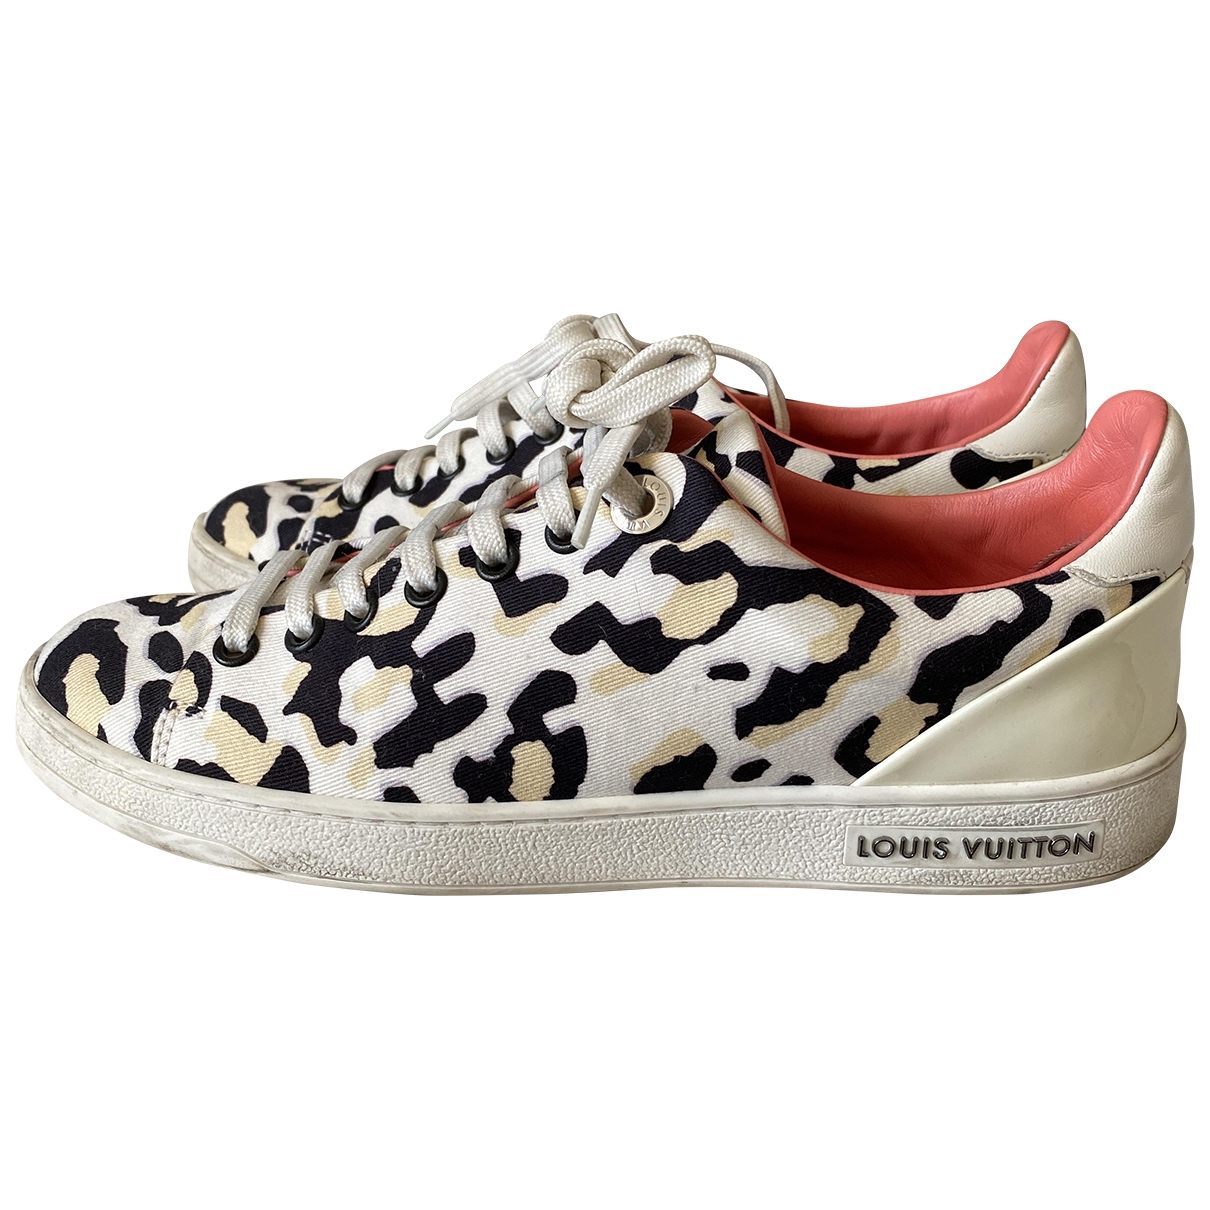 Louis Vuitton FrontRow White Cloth Trainers for Women 36.5 IT